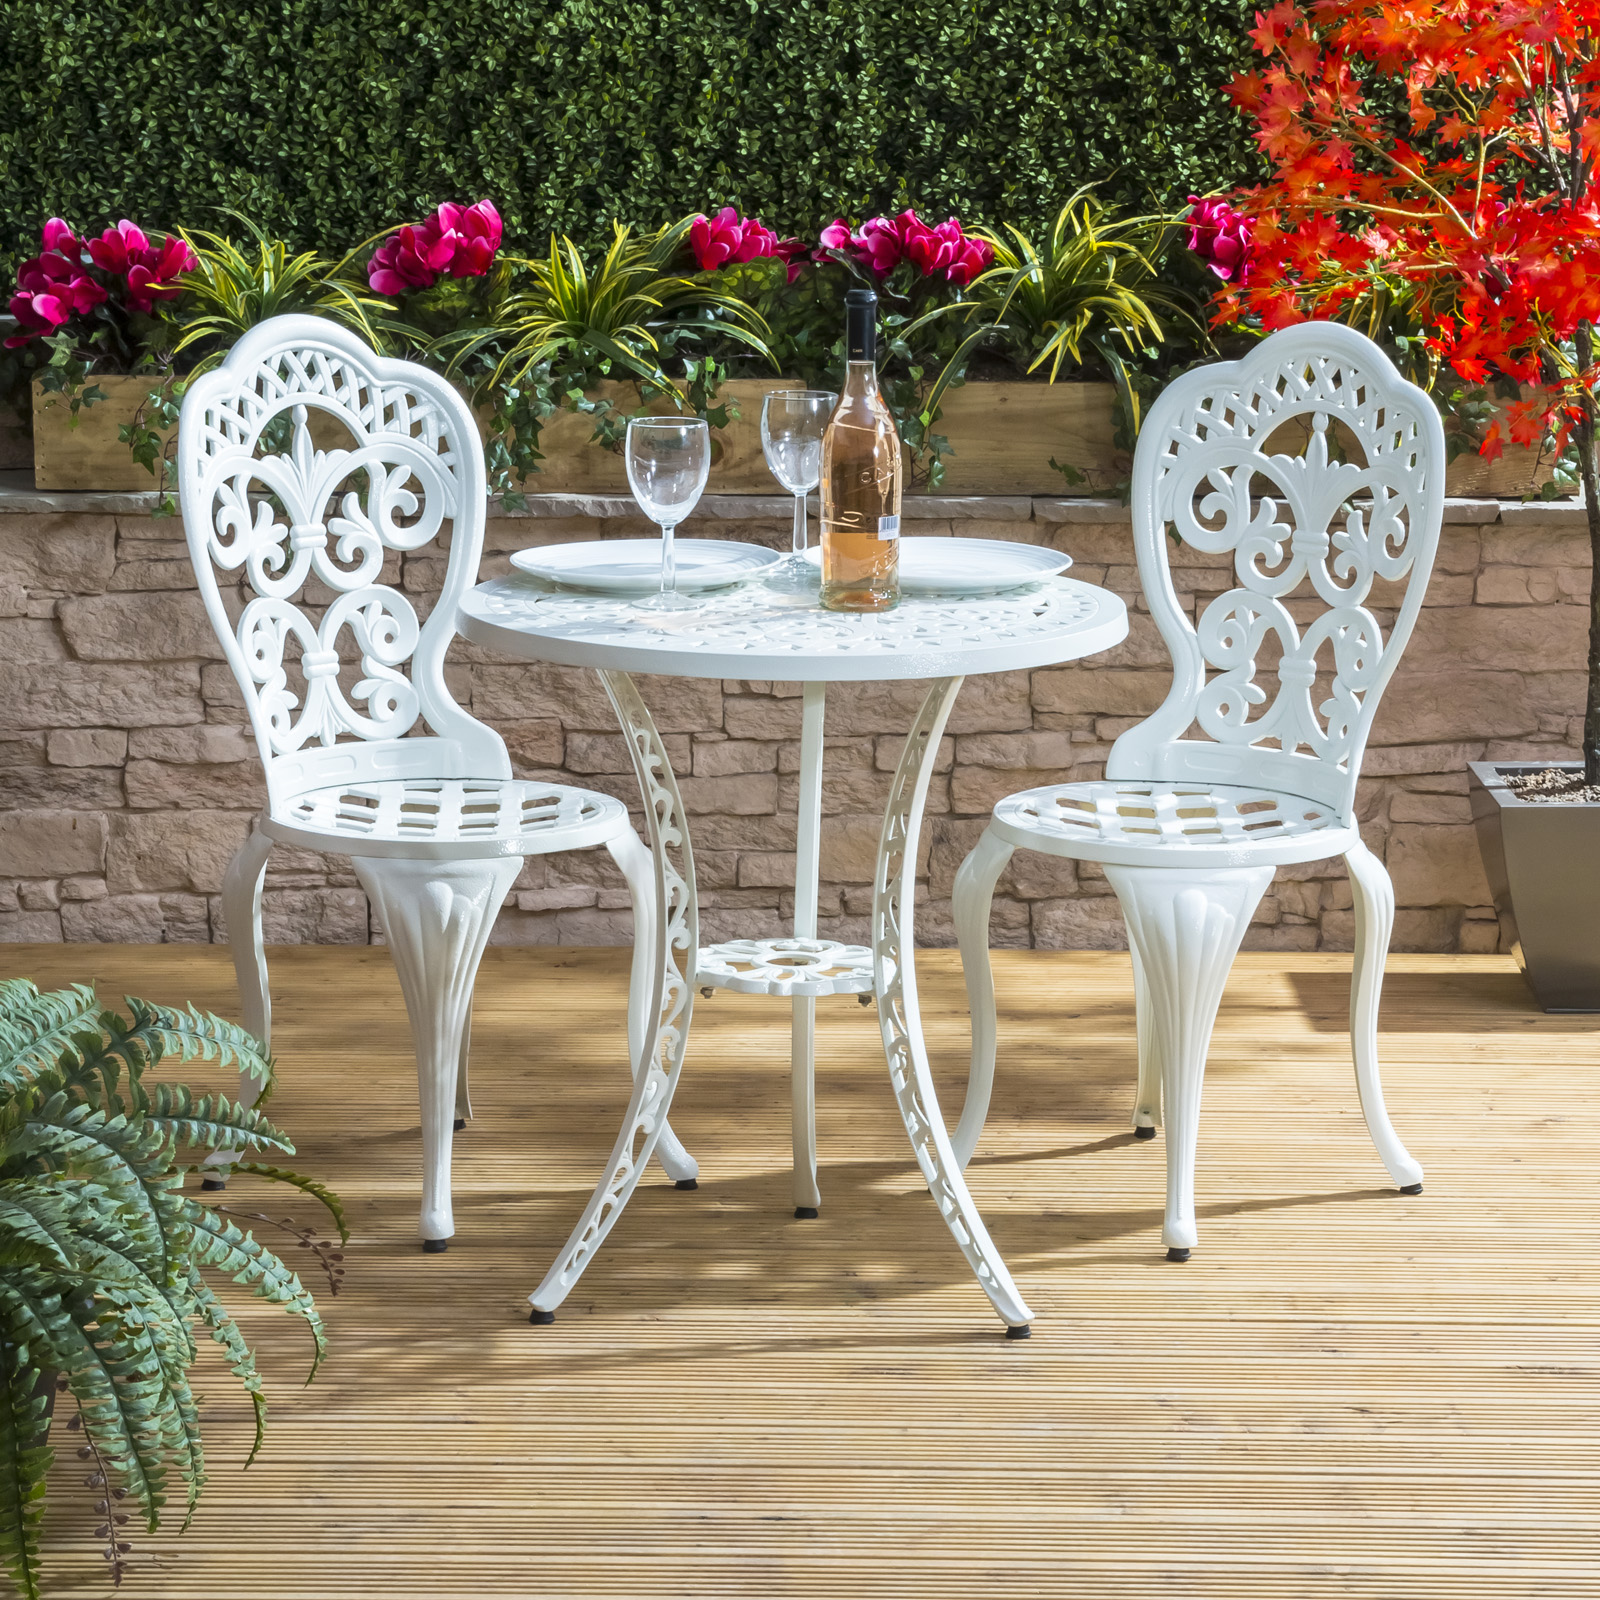 Alfresia garden furniture patio cast aluminium caf bistro for Garden table and chairs